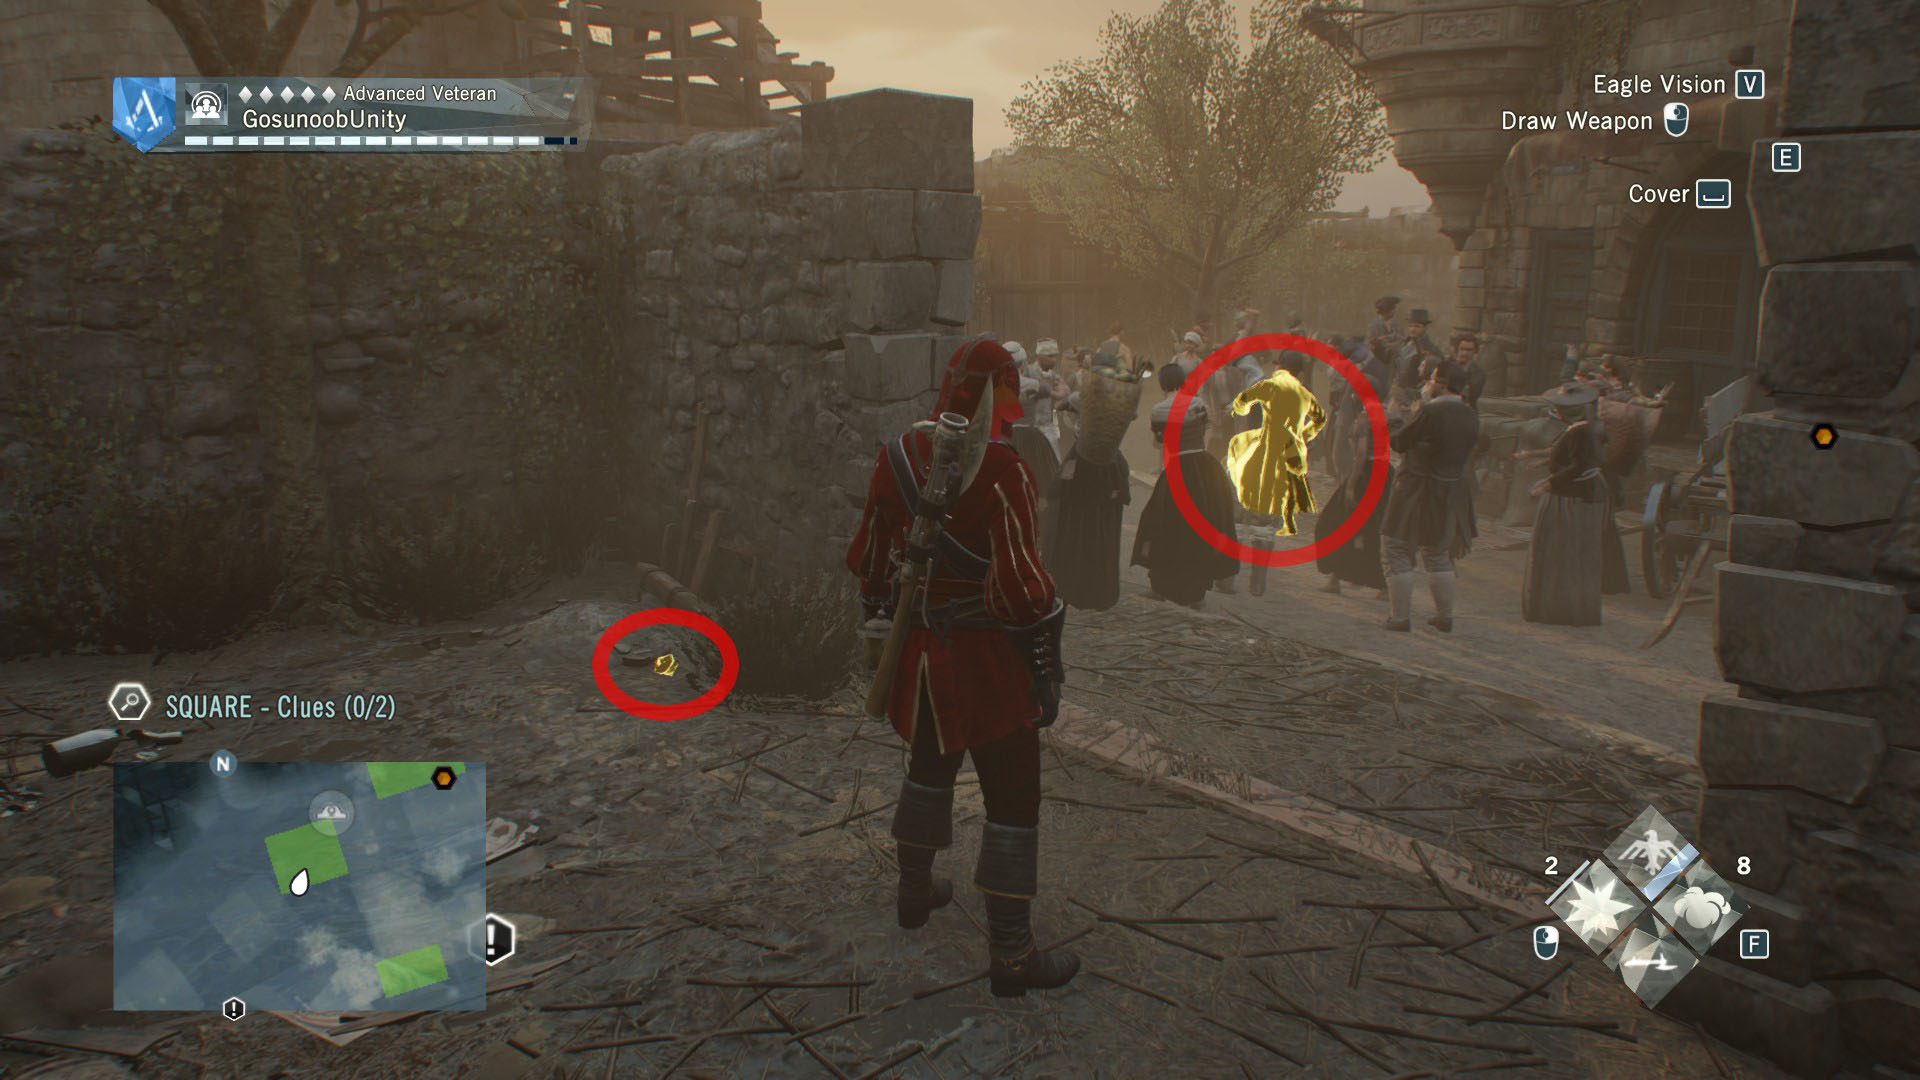 AC_Unity_Dead_Kings_Blind_Justice_Square_Clues_(2) - Gosu ...